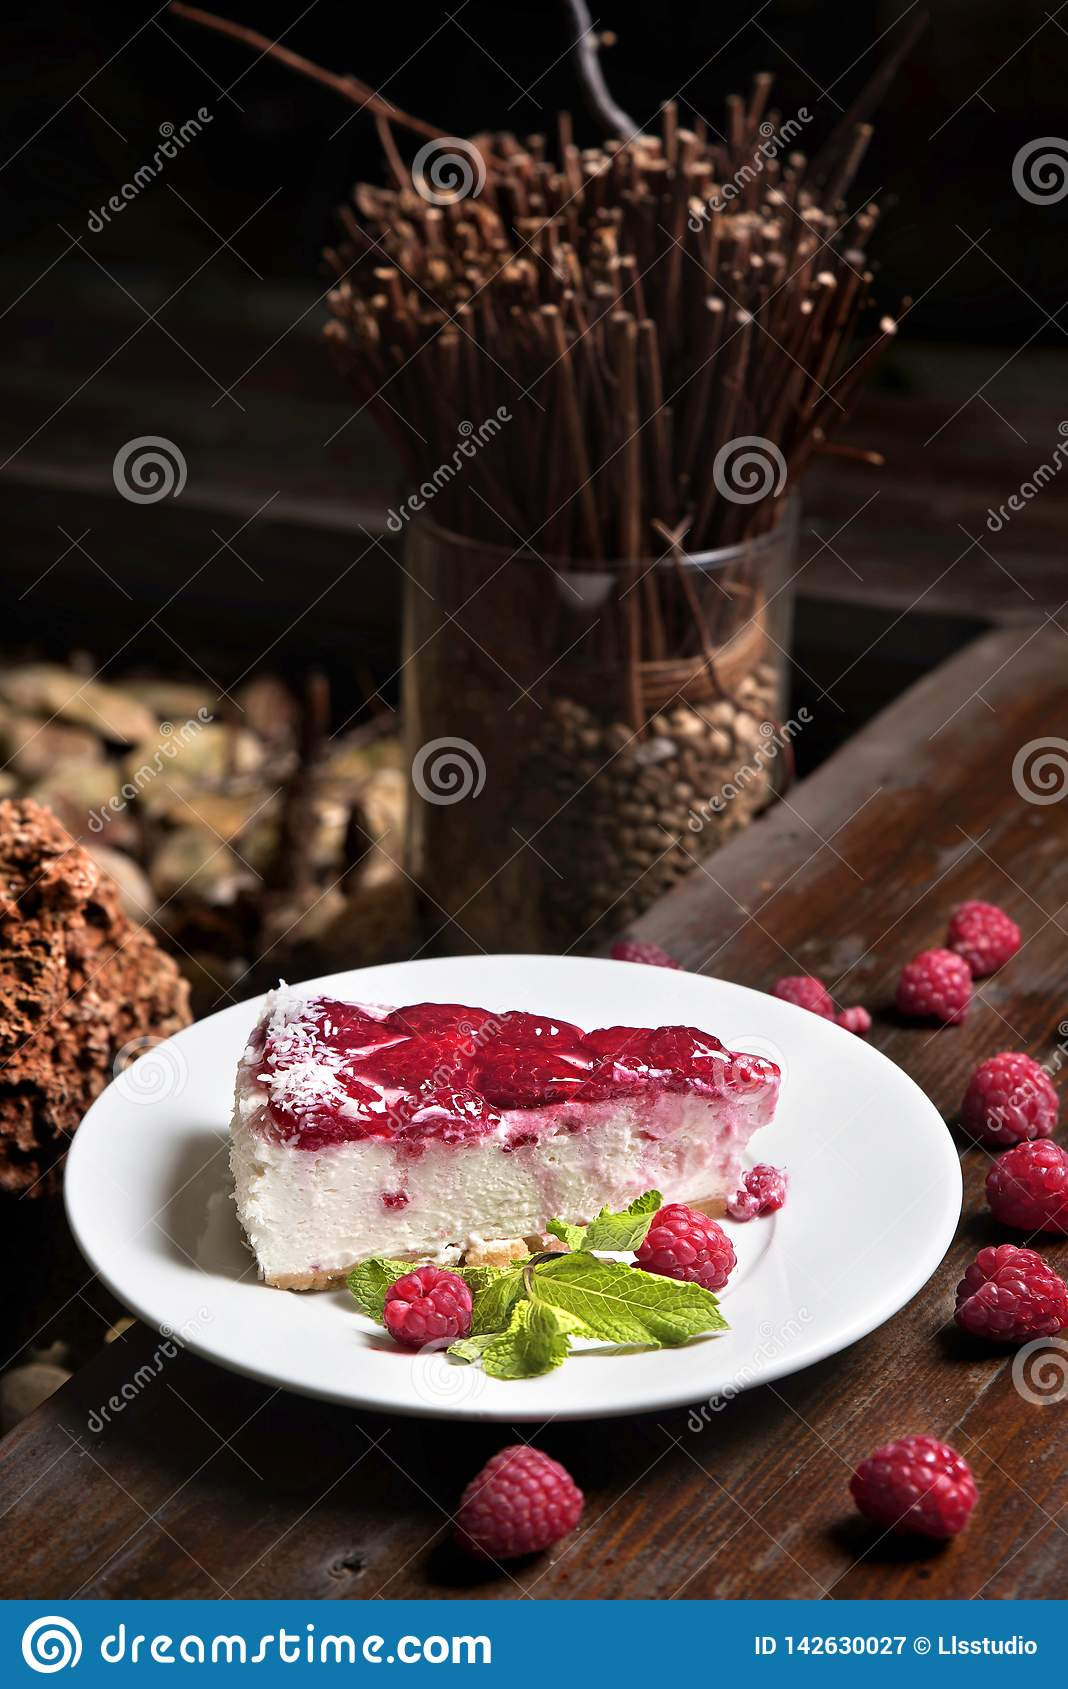 Homemade Raspberry Cheesecake with mint and berries.